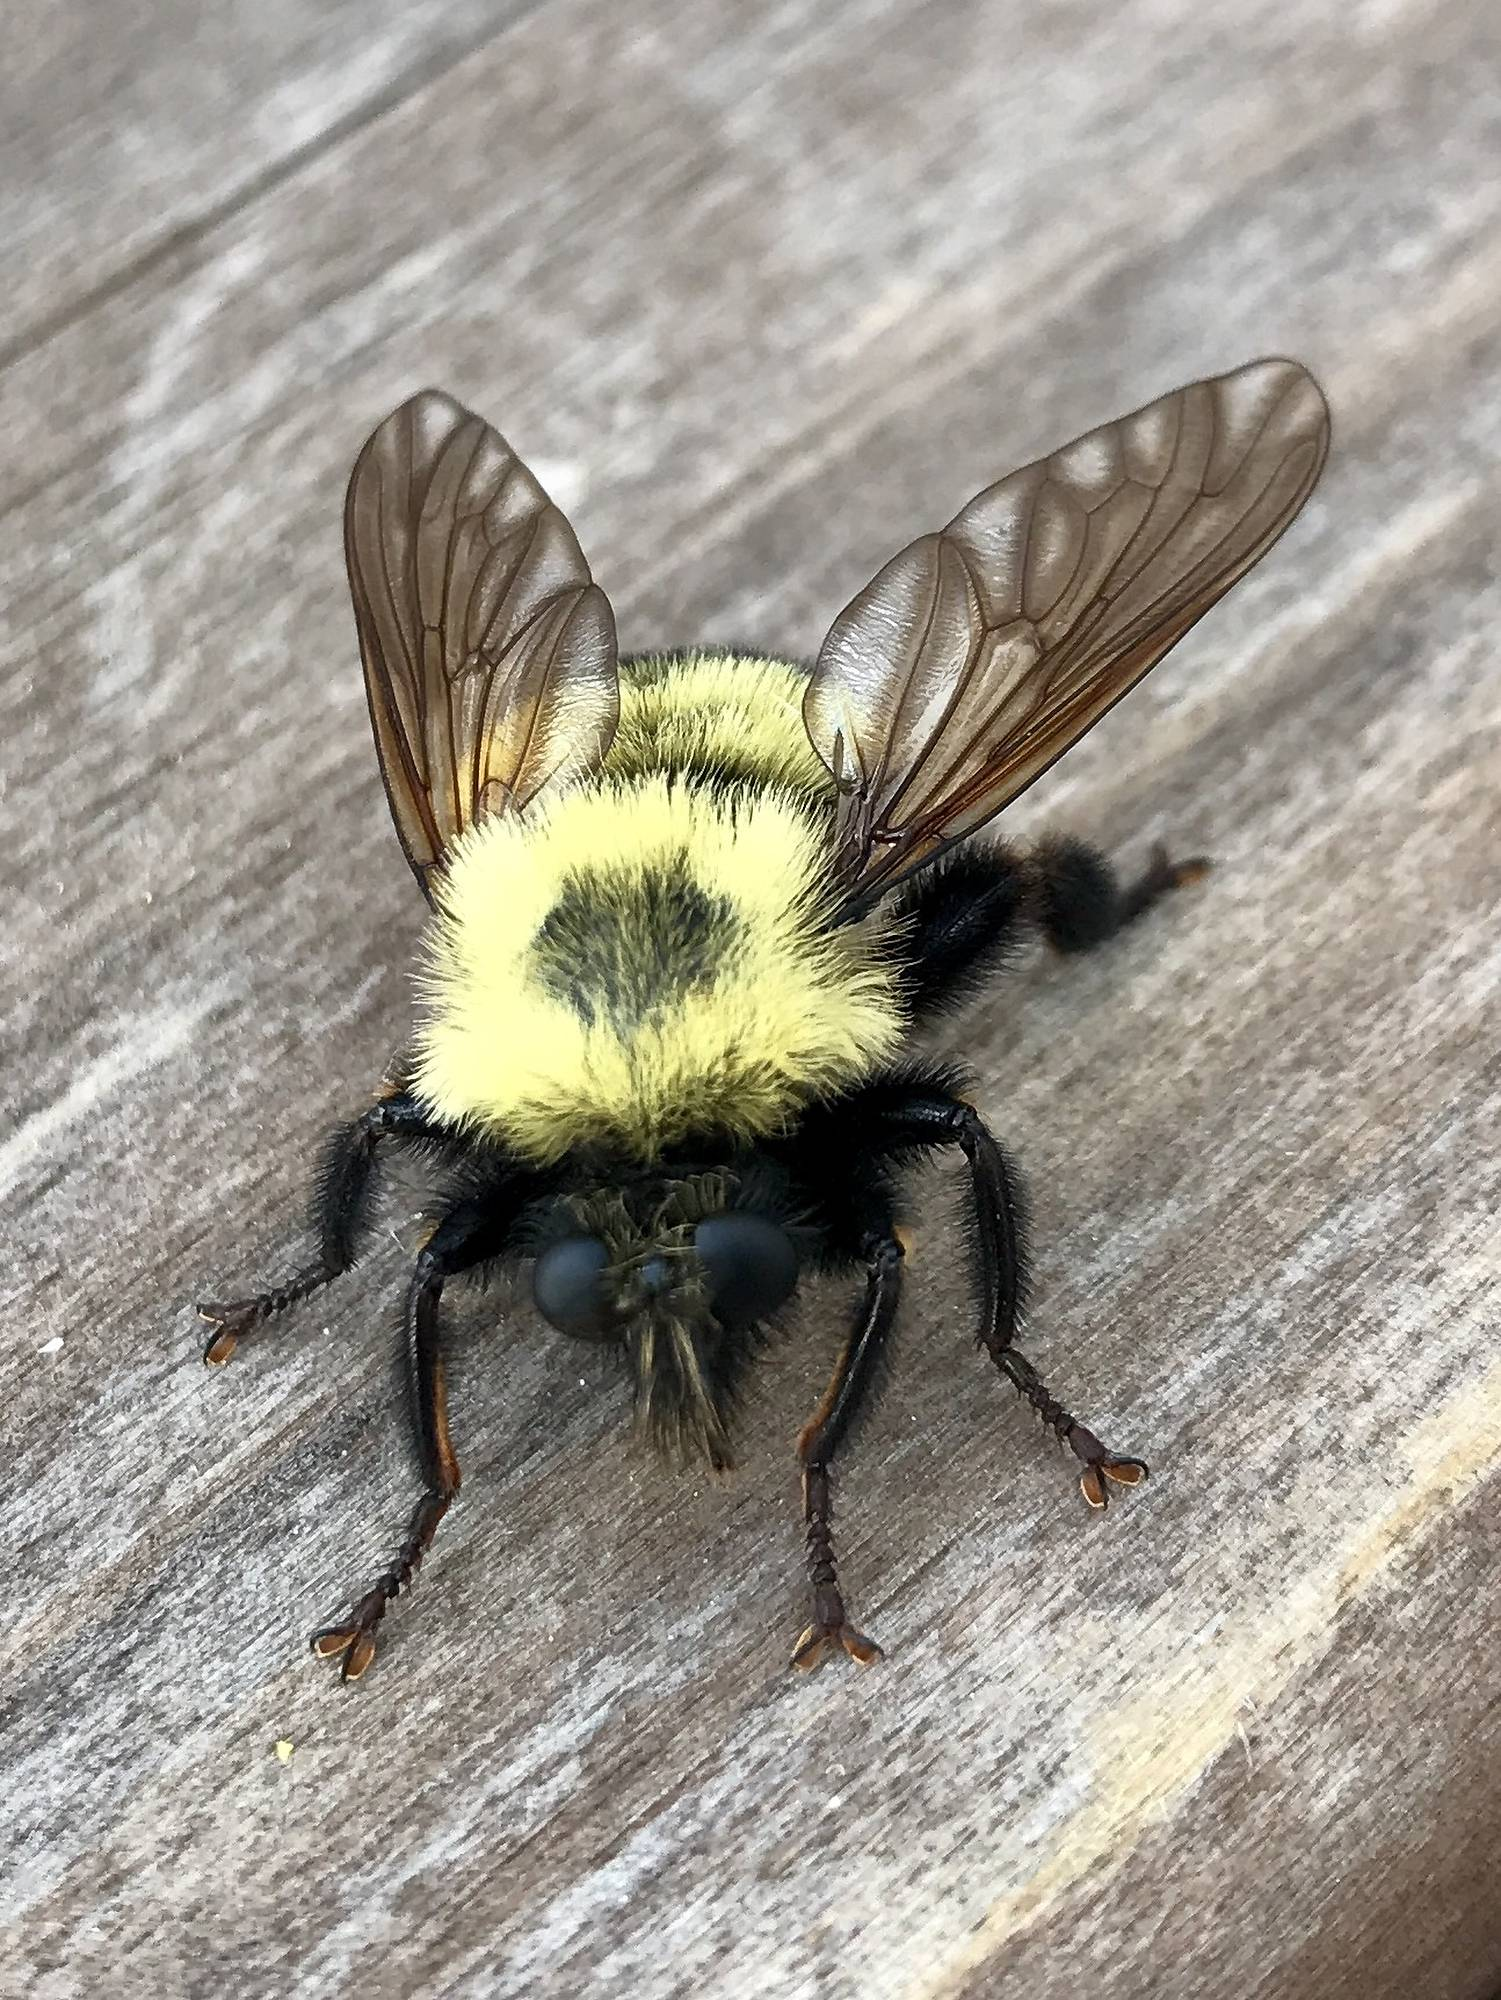 This bubble bee took a rest at our BBQ and didn't mind me getting up close to take a photograph. Our guests were amazed to see the detail and what a fascinating creature the bee really is!